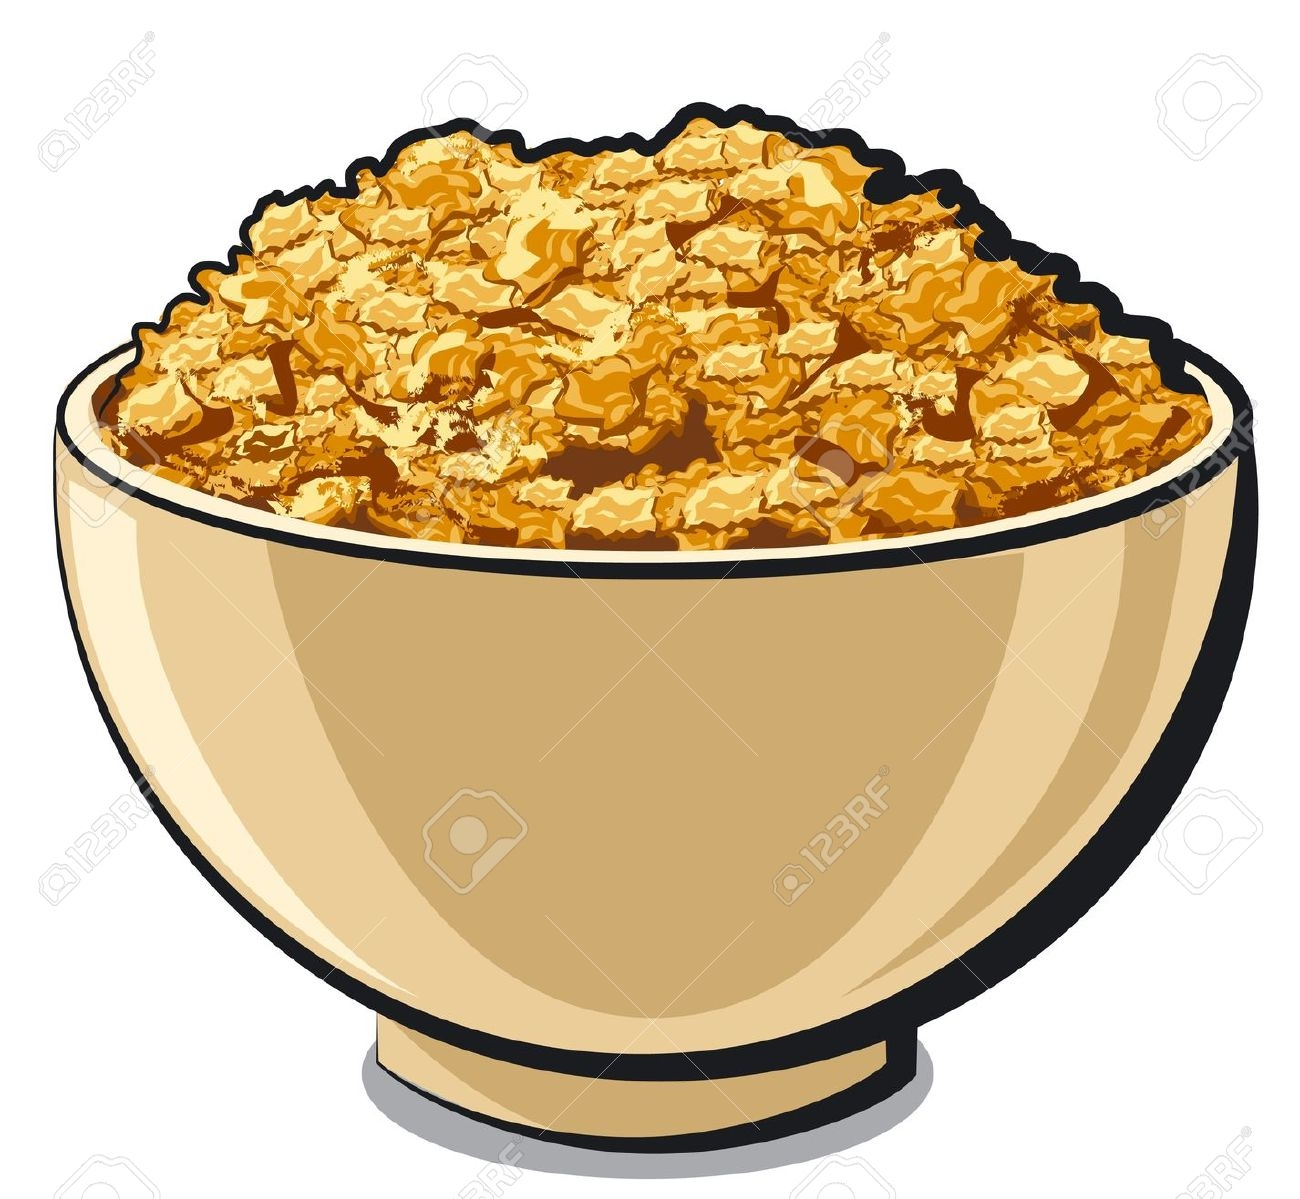 Unique gallery digital collection. Cereal clipart oats